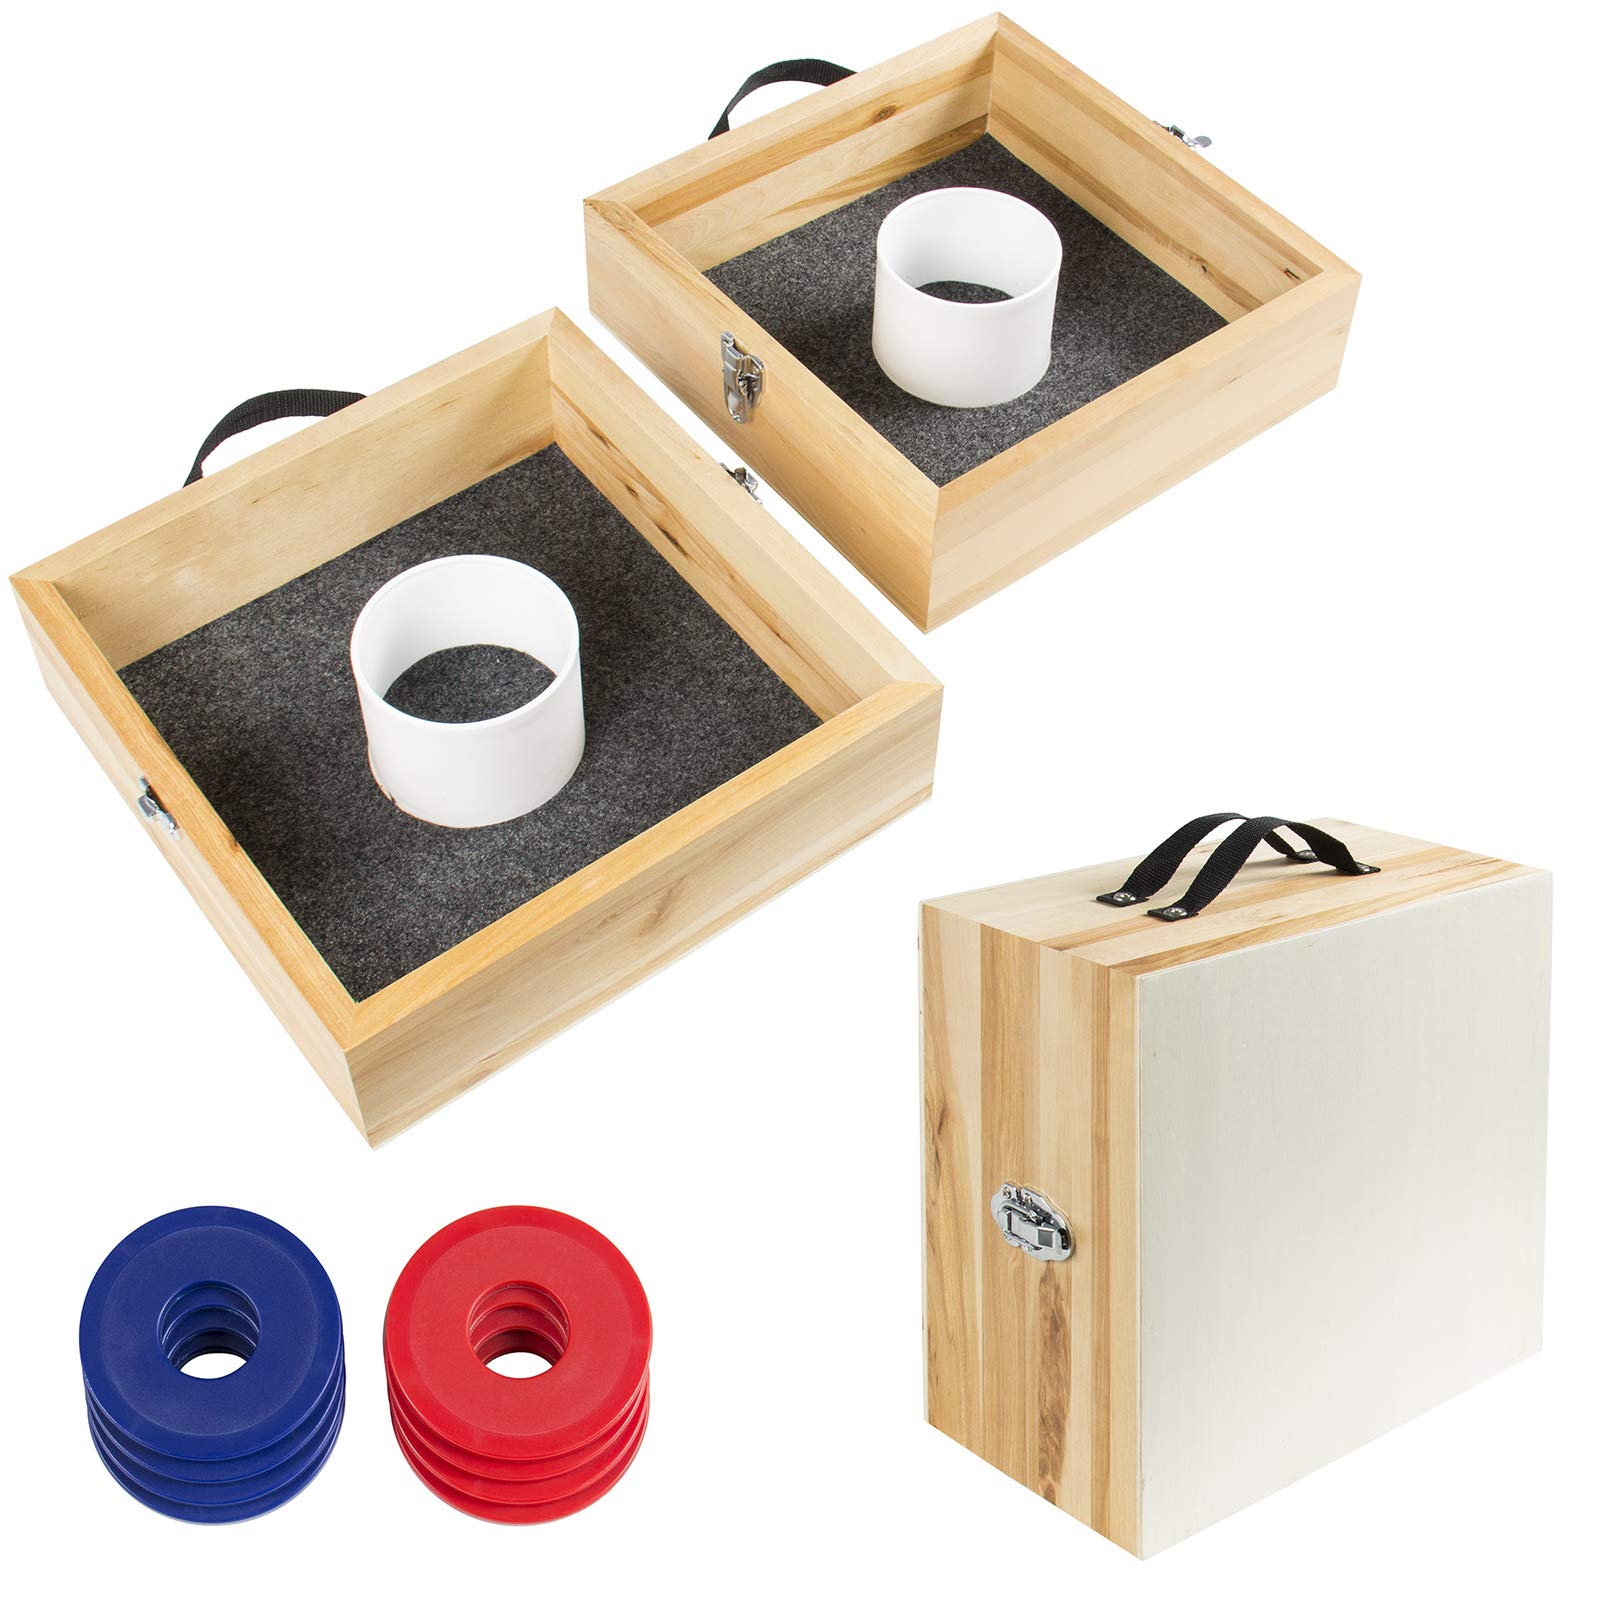 Best Choice Products Wood Washer Toss Game Set Outdoor Backyard Party Games by Best Choice Products